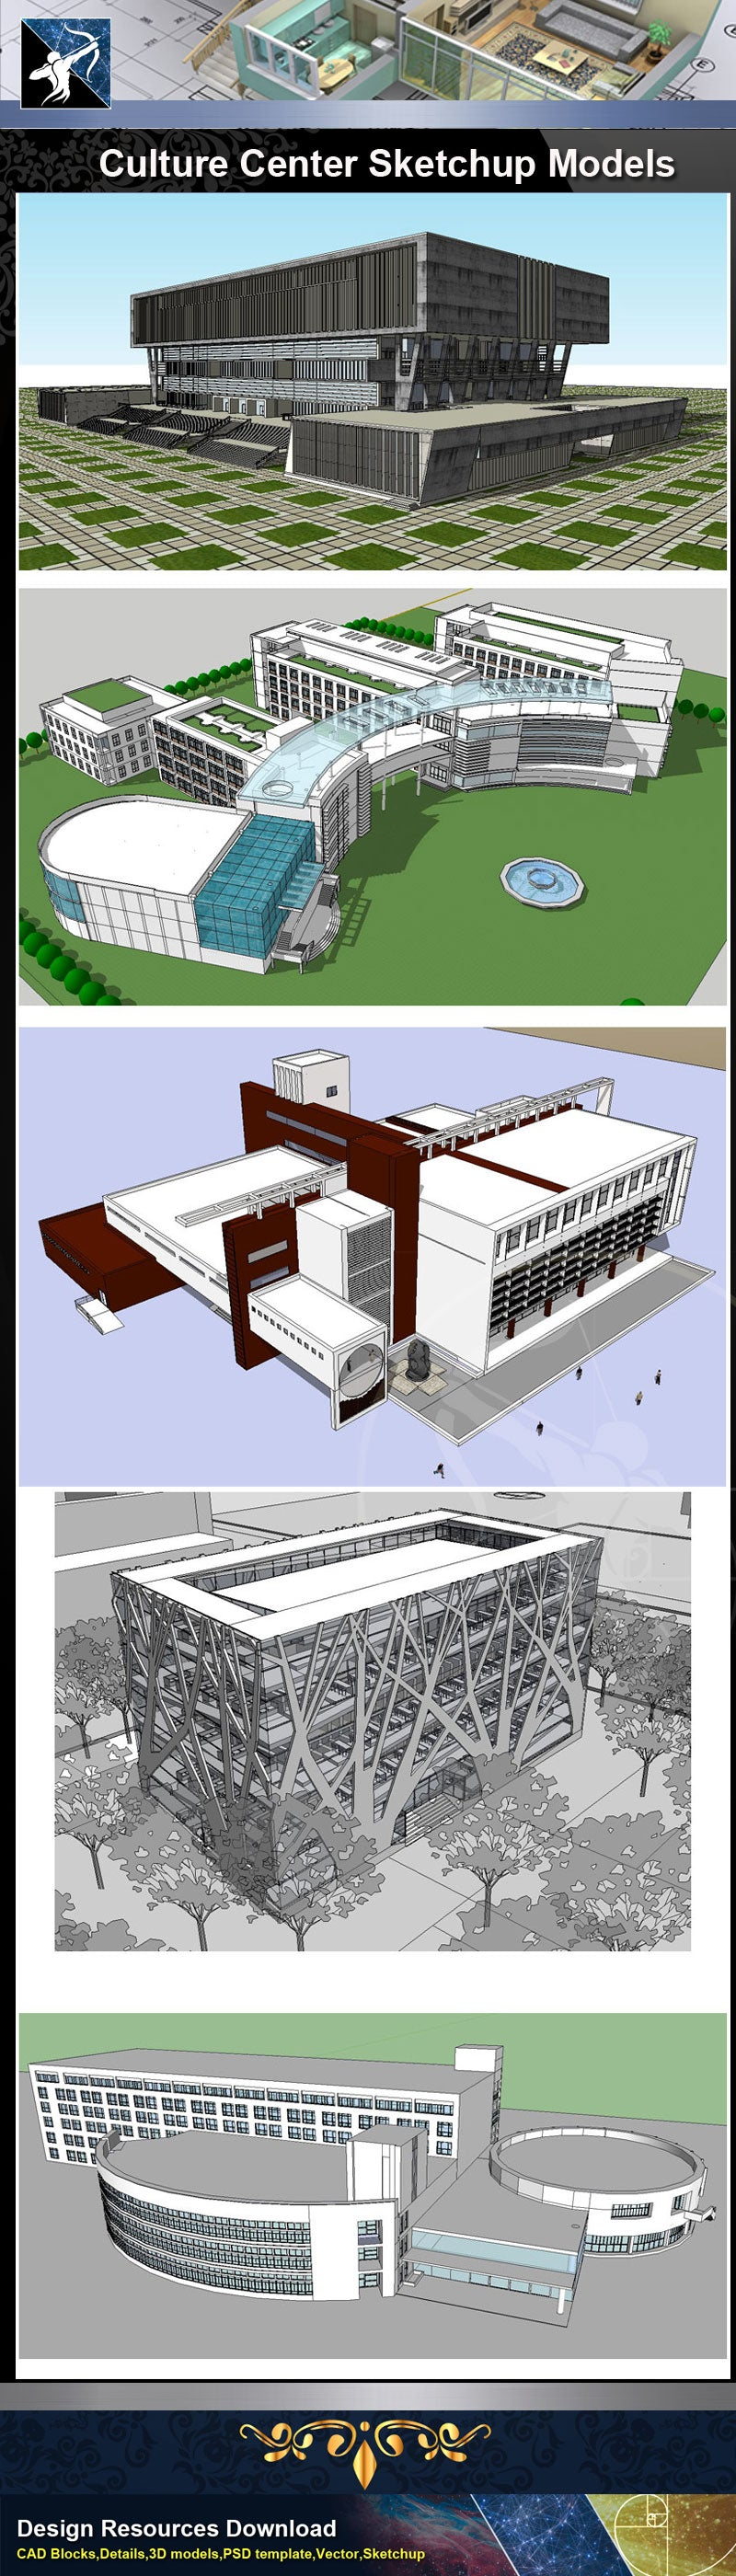 ★Sketchup 3D Models-15 Types of Culture Center Sketchup Models